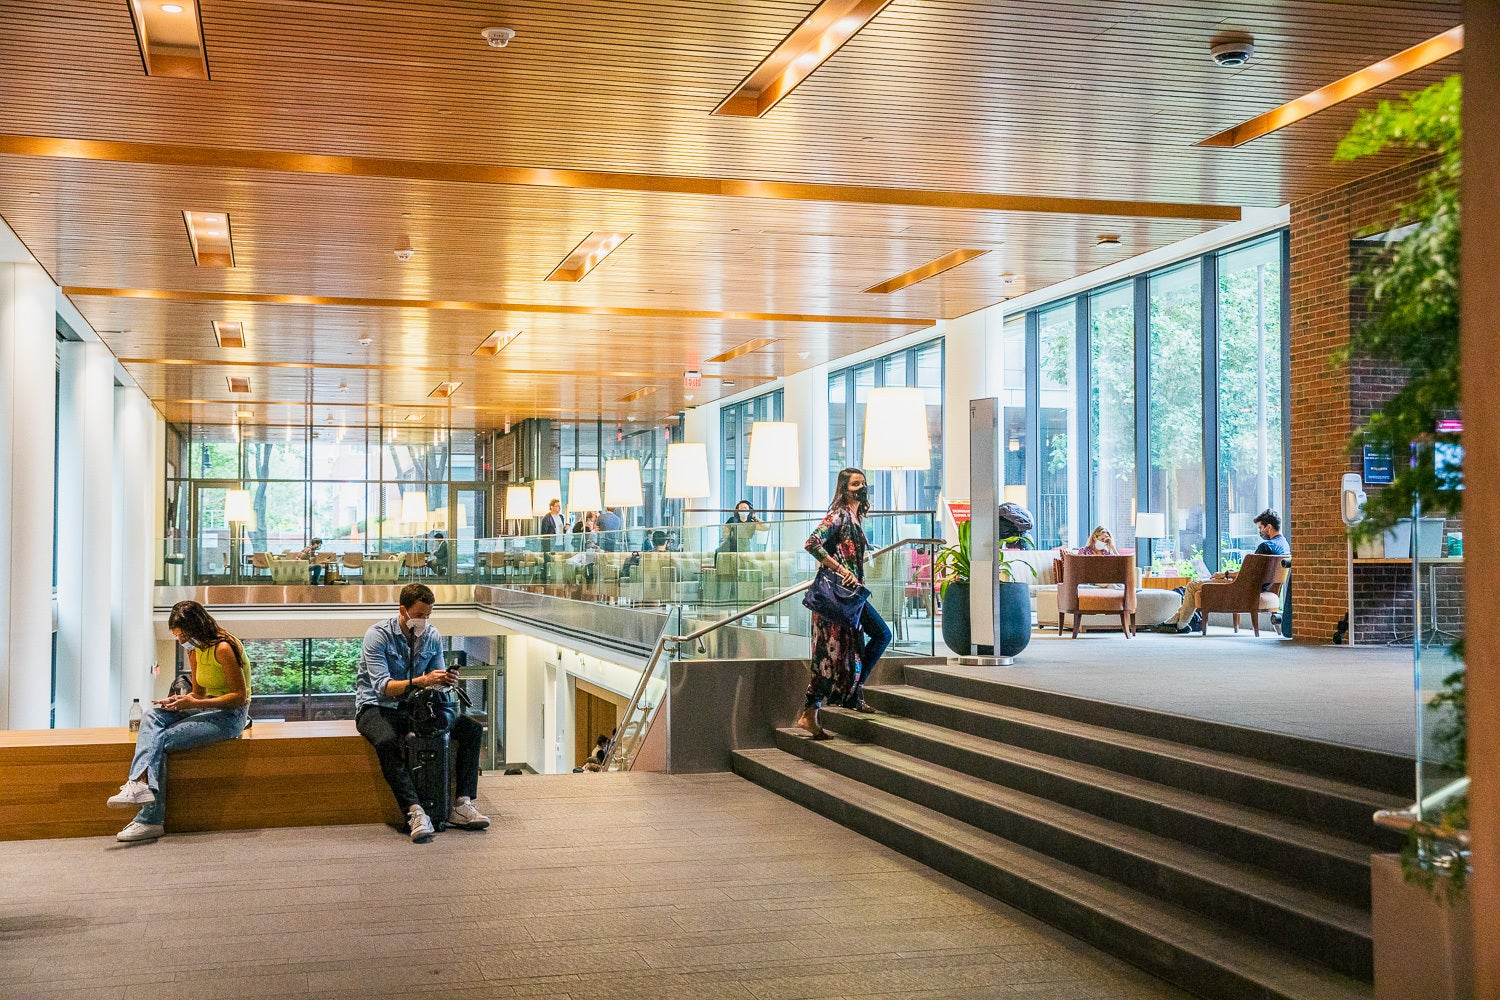 Students wearing masks sit in an open sunny space